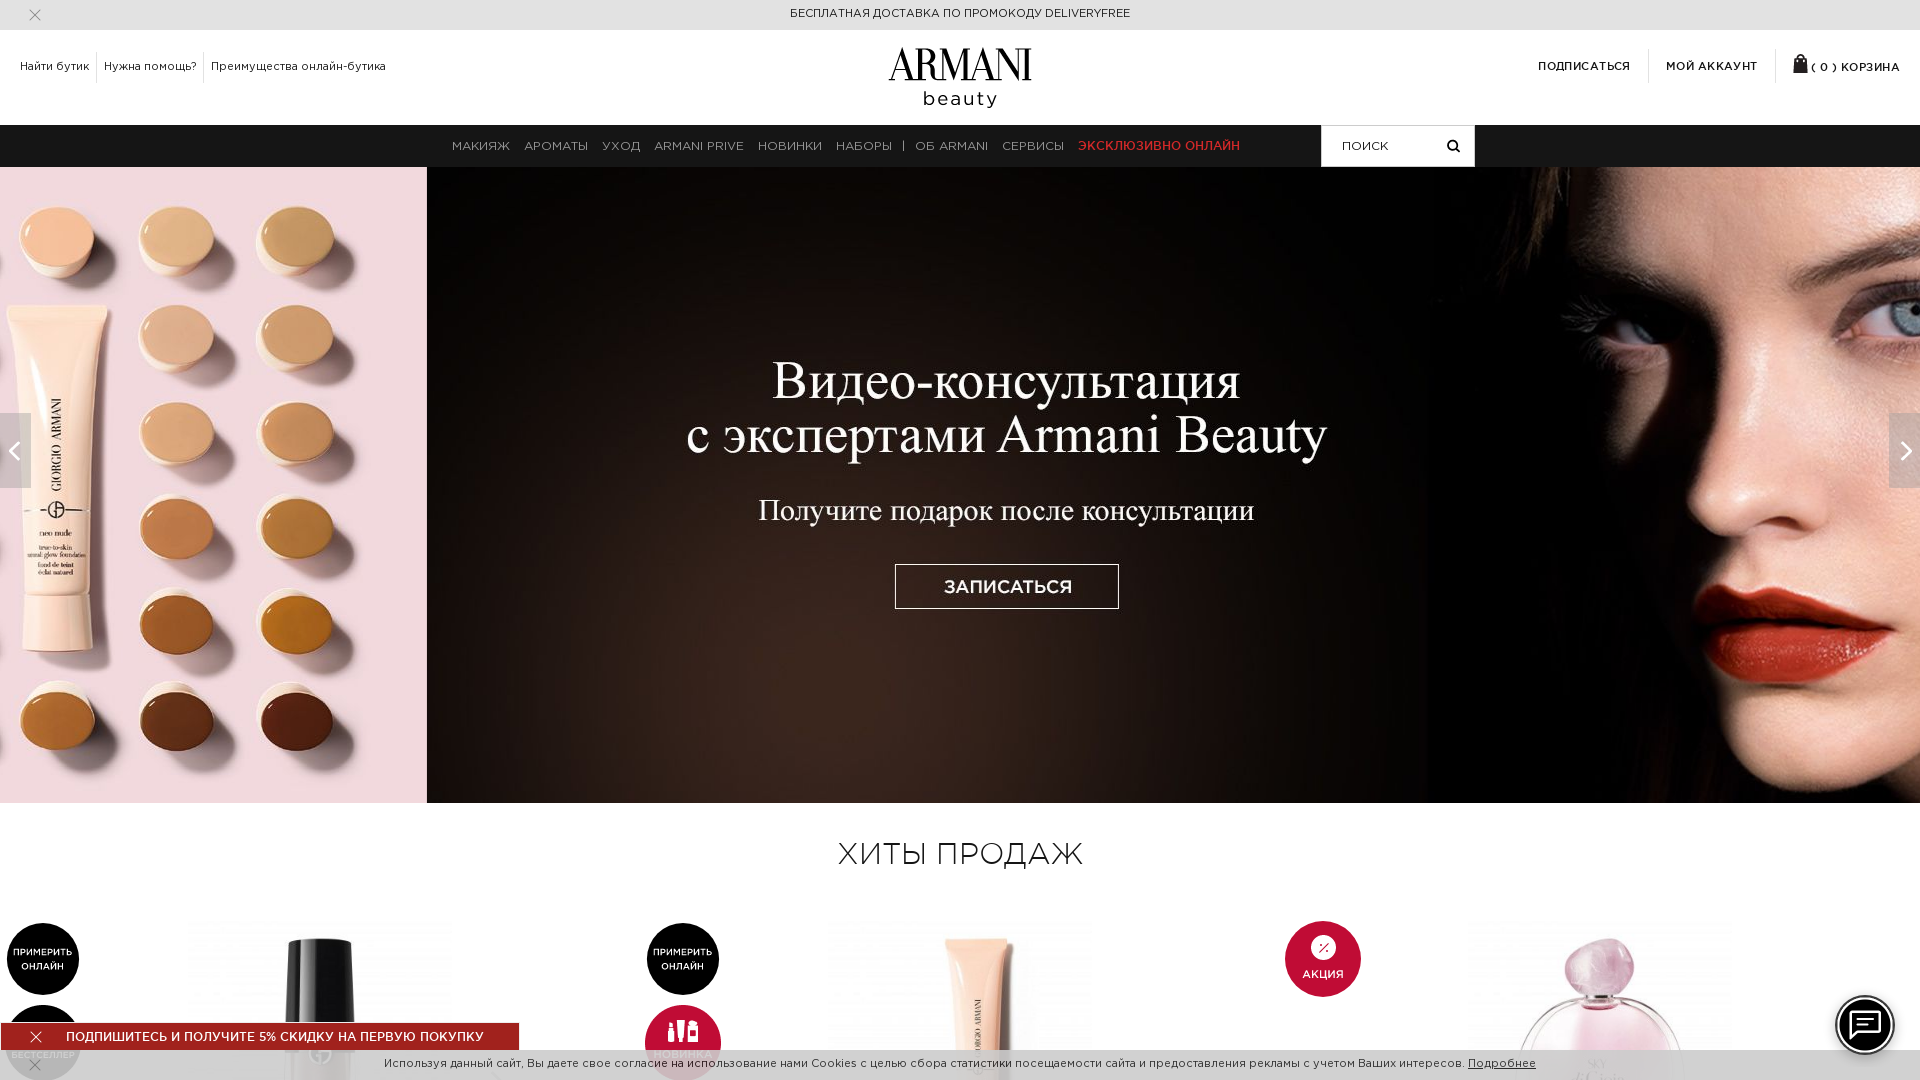 Giorgio Armani Beauty RU website